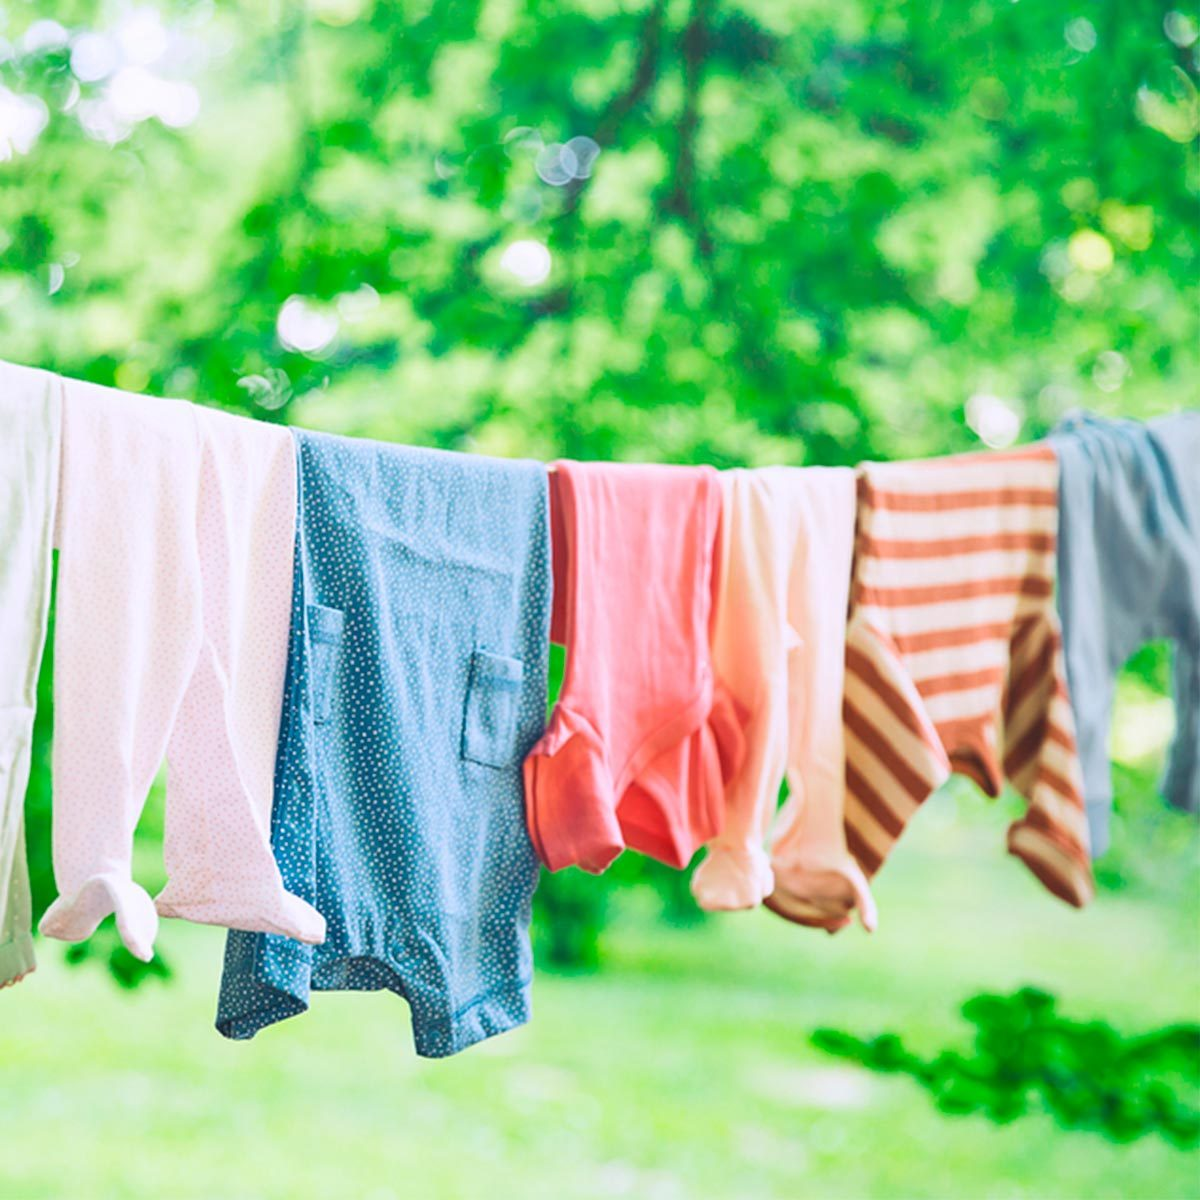 clothesline with floss